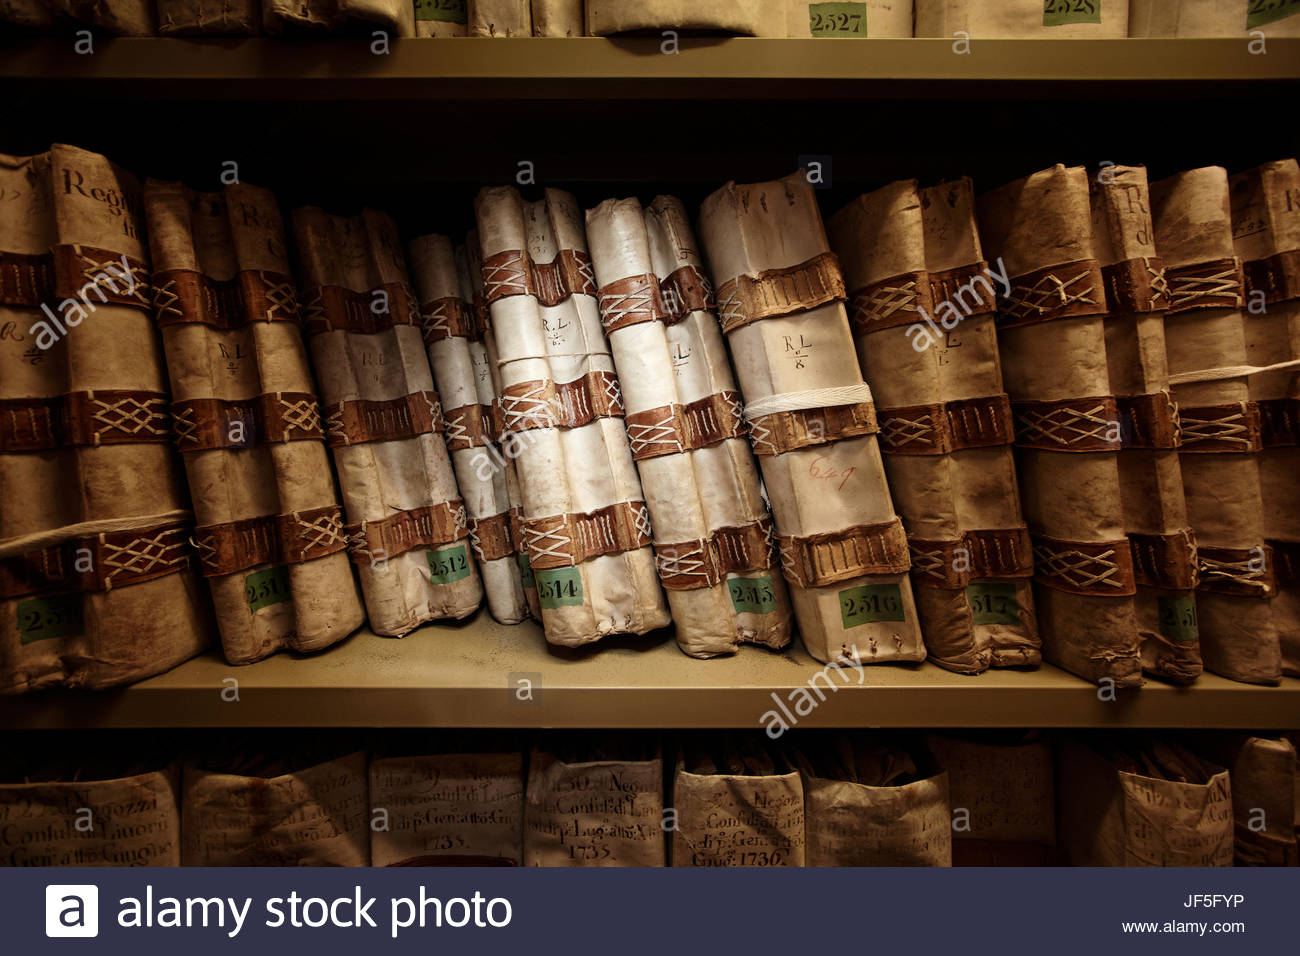 A row of historical documents in the state archives in Florence, Italy. - Stock Image